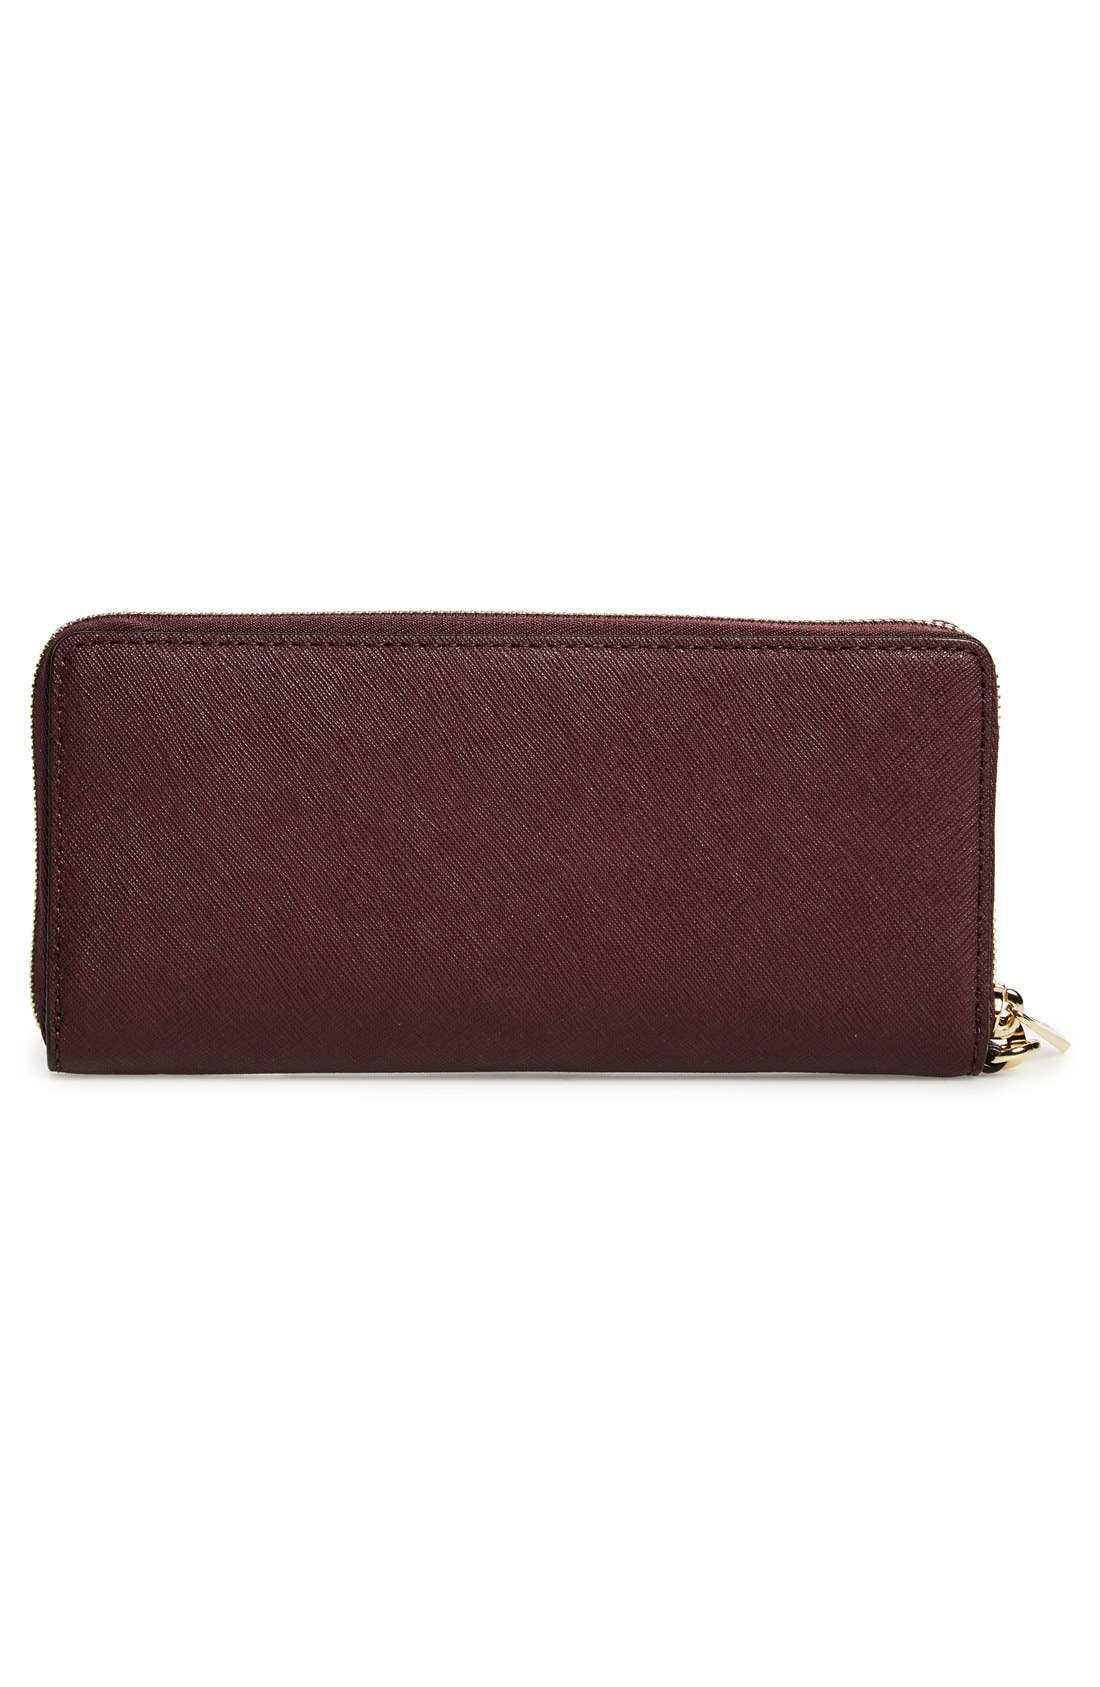 'Jet Set' Leather Travel Wallet,                             Alternate thumbnail 43, color,